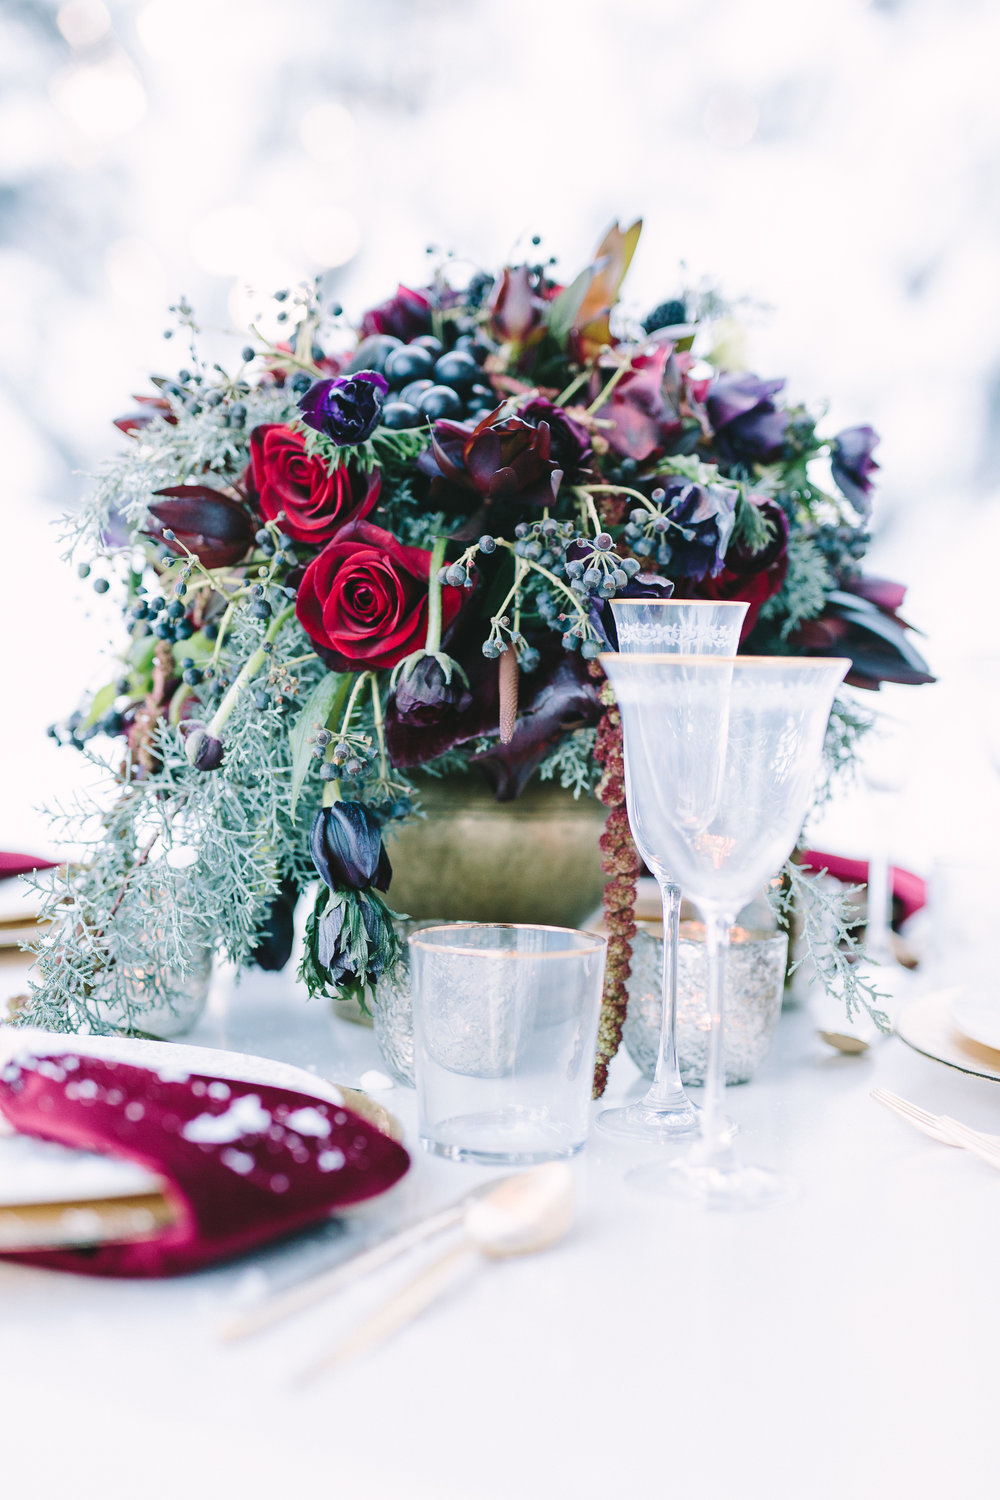 destination-wedding-table-gold-details-flower-centerpiece-artdelatable-floral-design